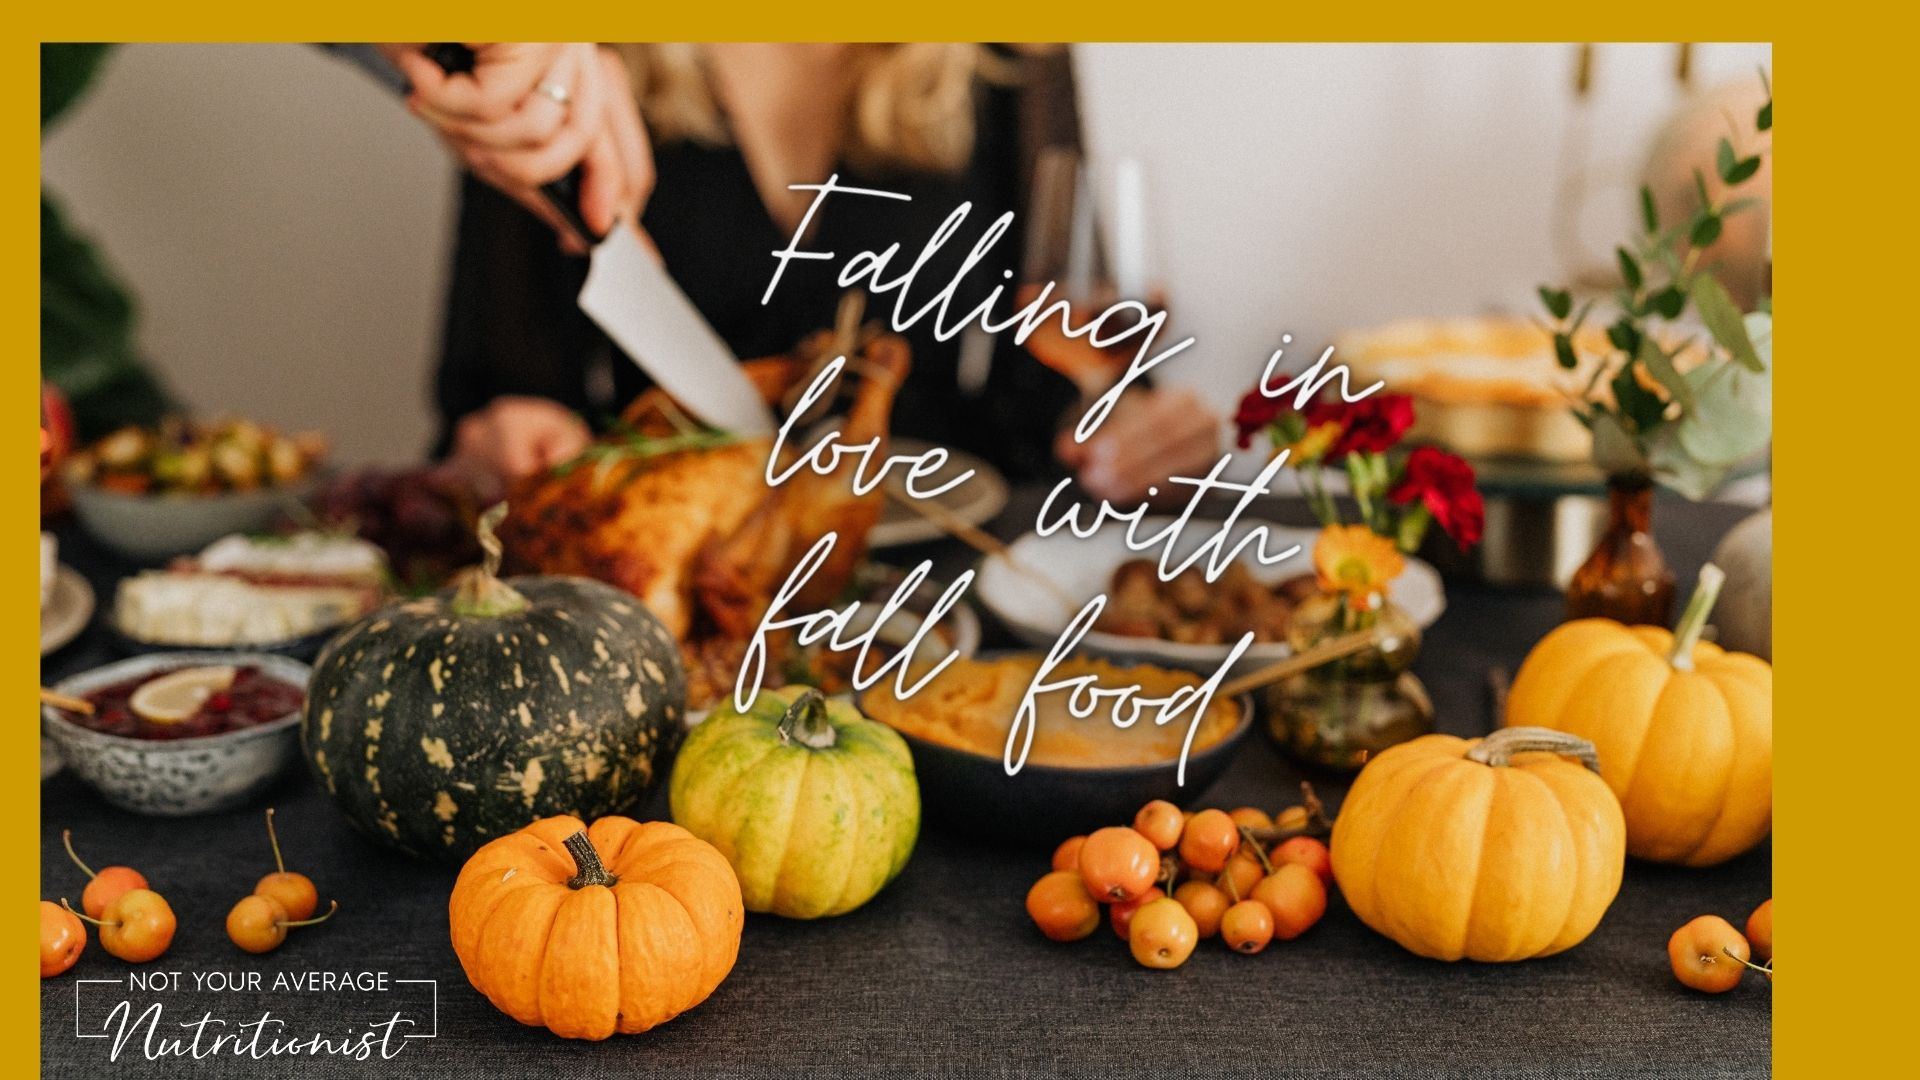 Falling in love with fall foods